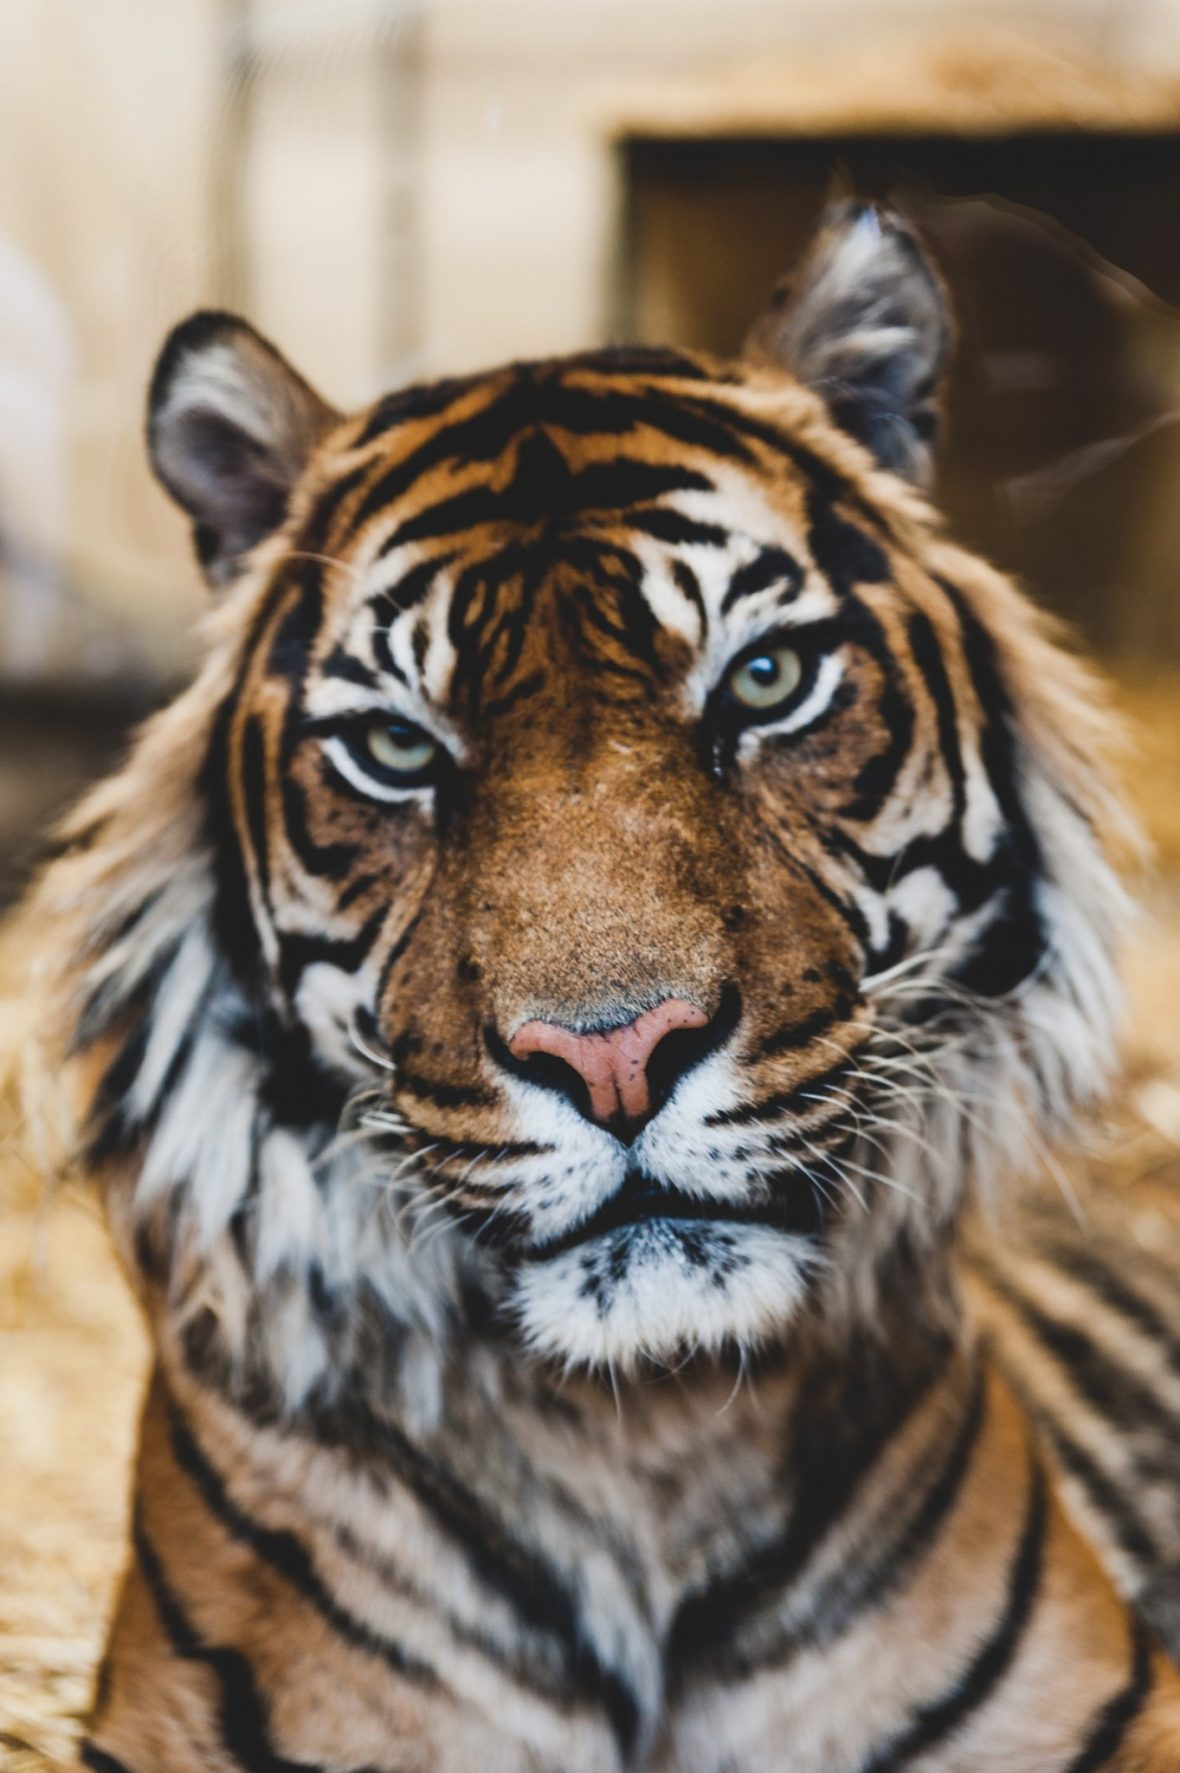 Dartmoor Zoo is home to a pair or Amur Tigers - Dragan and Alisha